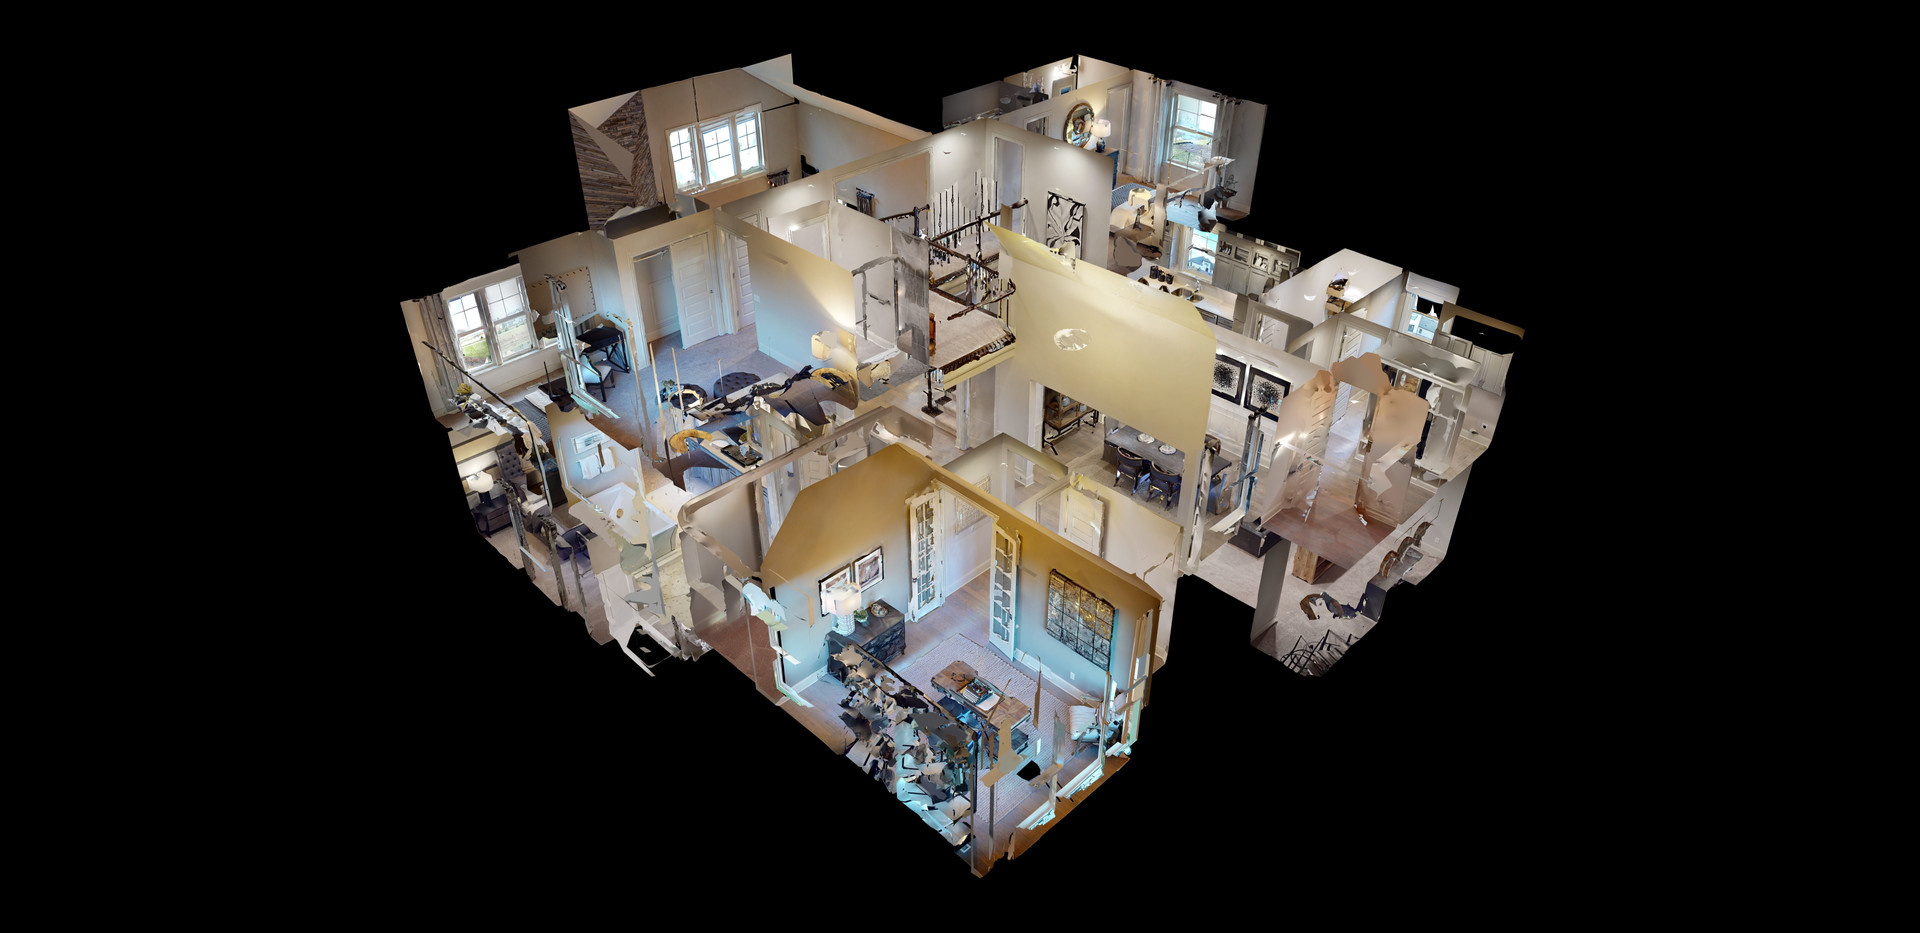 Matterport virtual tour dollhouse view photo showing layout of home from exterior perspective